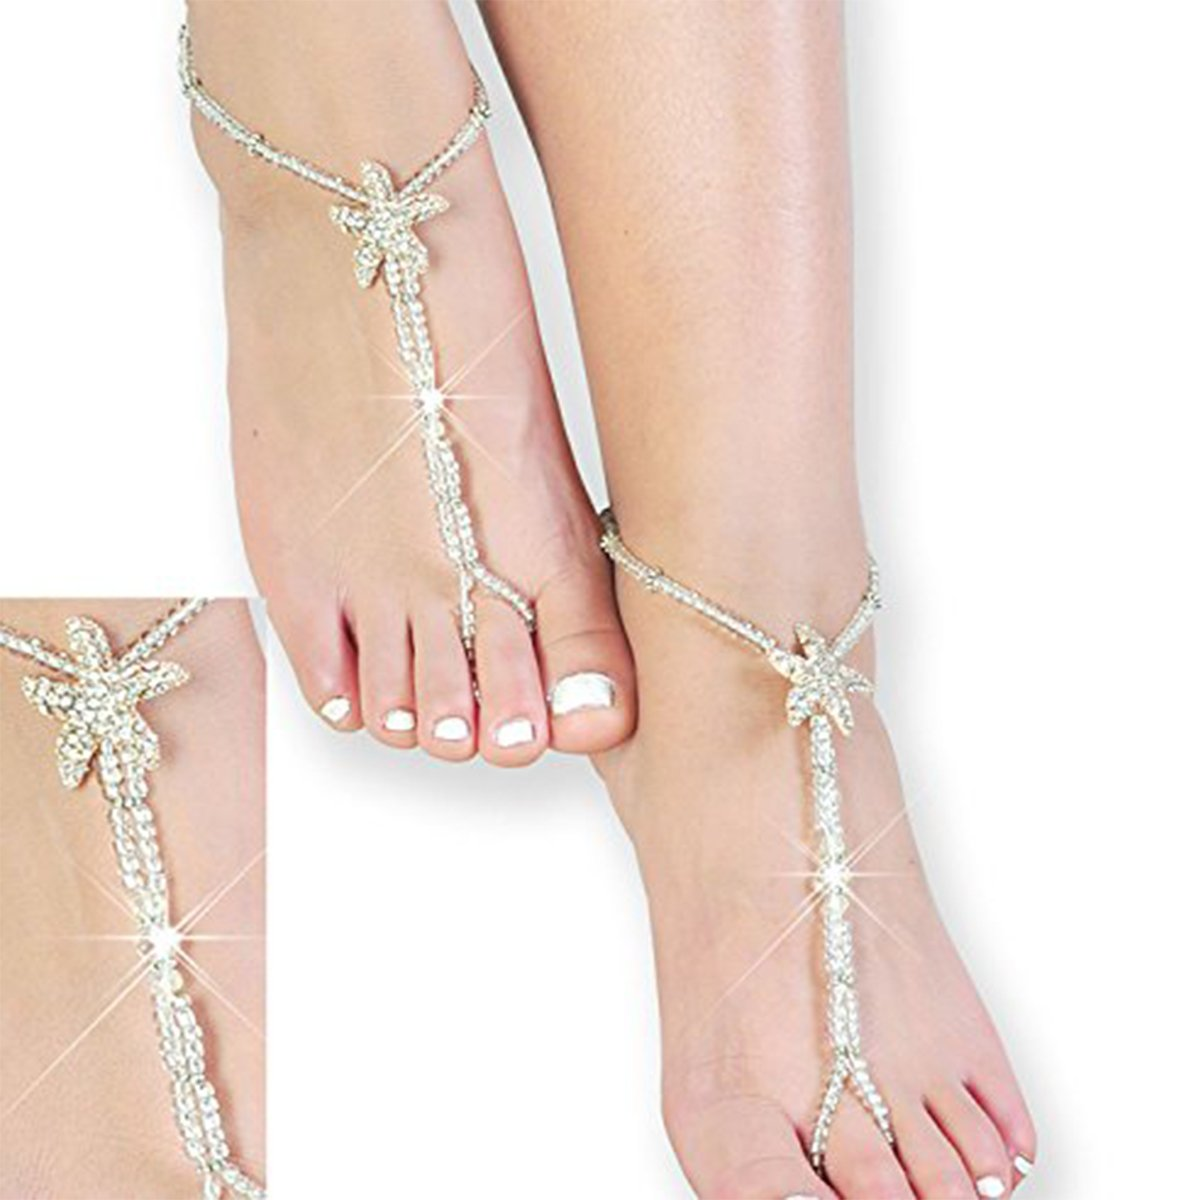 Beaded Bridal Barefoot Sandals,Wedding Anklet,Crystal Sandals,Bridesmaid Gift by Fine Lady (Image #1)